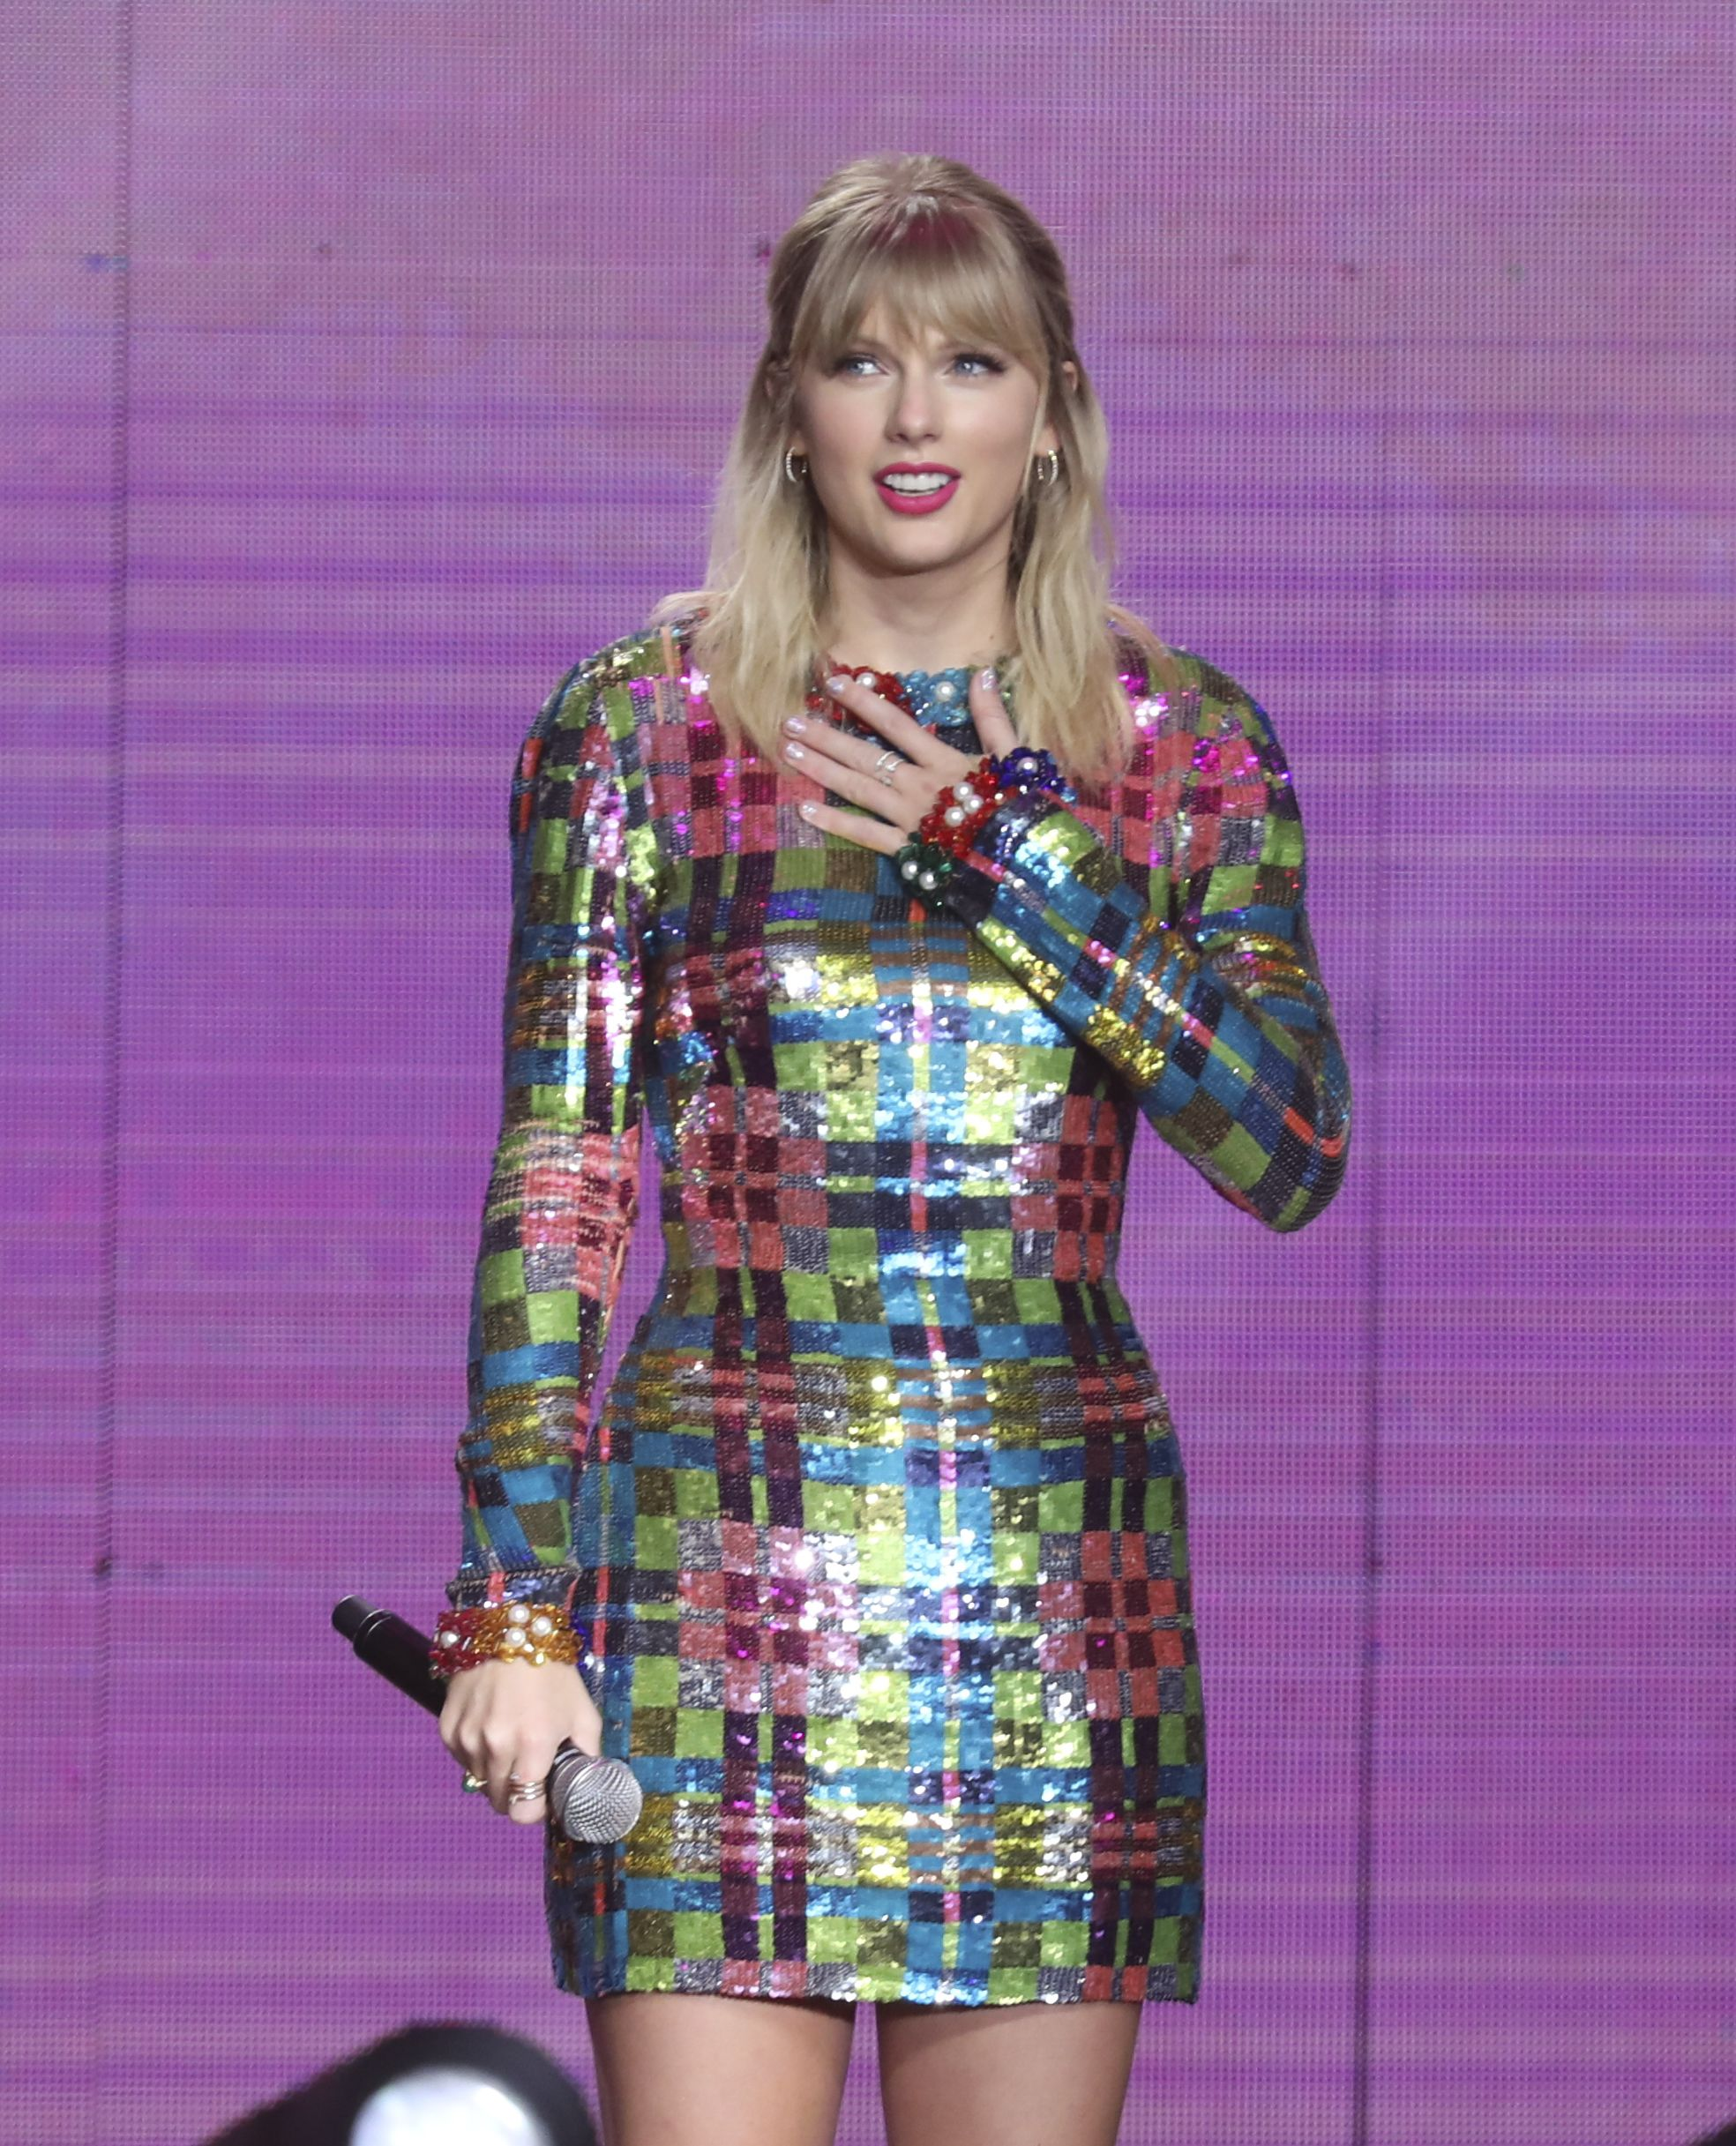 Taylor Swift Says Scooter Braun and Scott Borchetta Won't Allow Her to Perform Her Old Music on TV